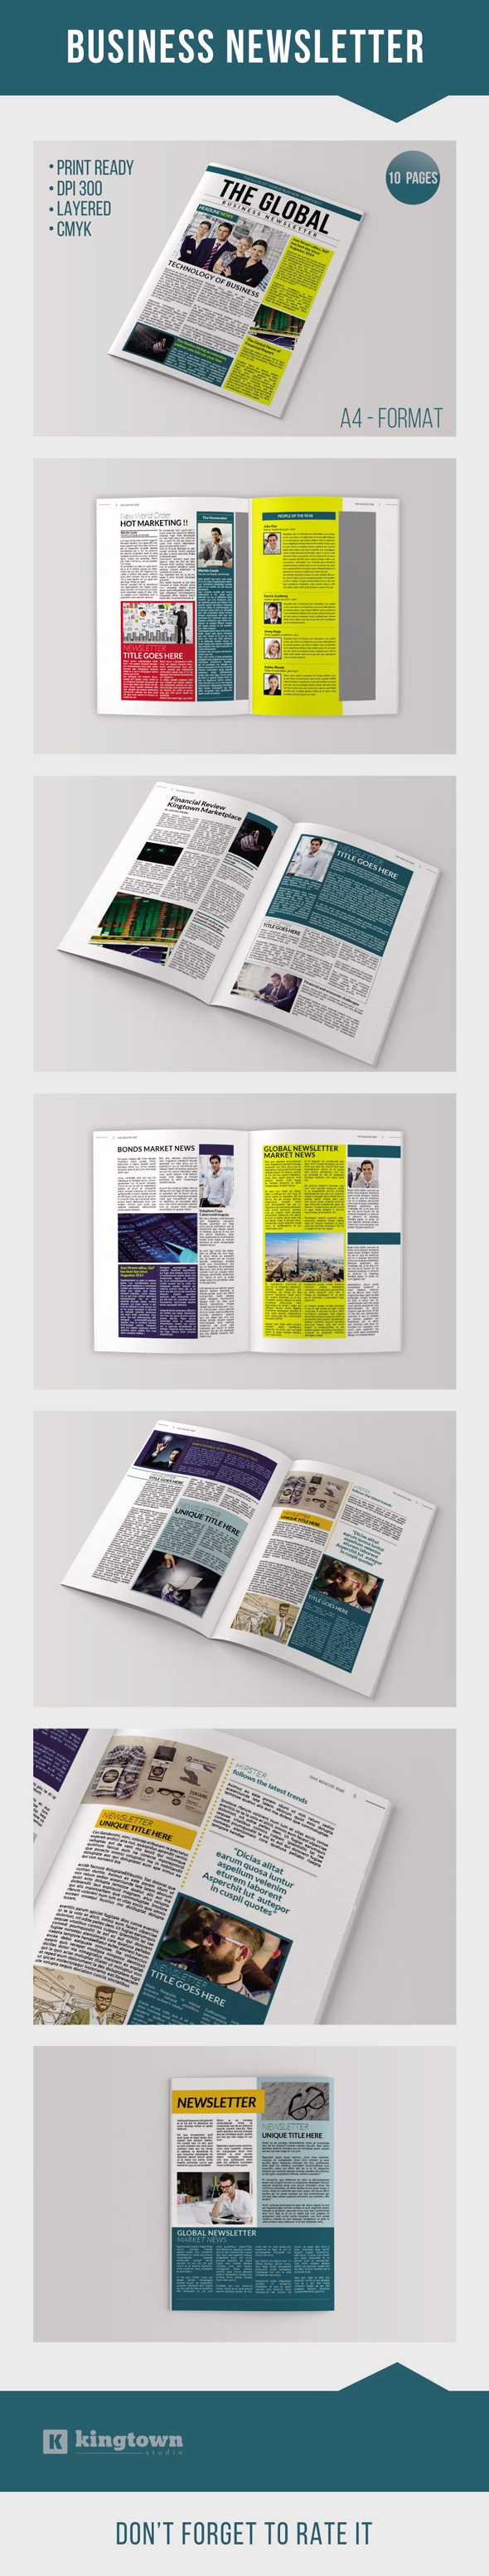 Indesign Business Newsletter Vol 2 On Behance Covers And Layouts